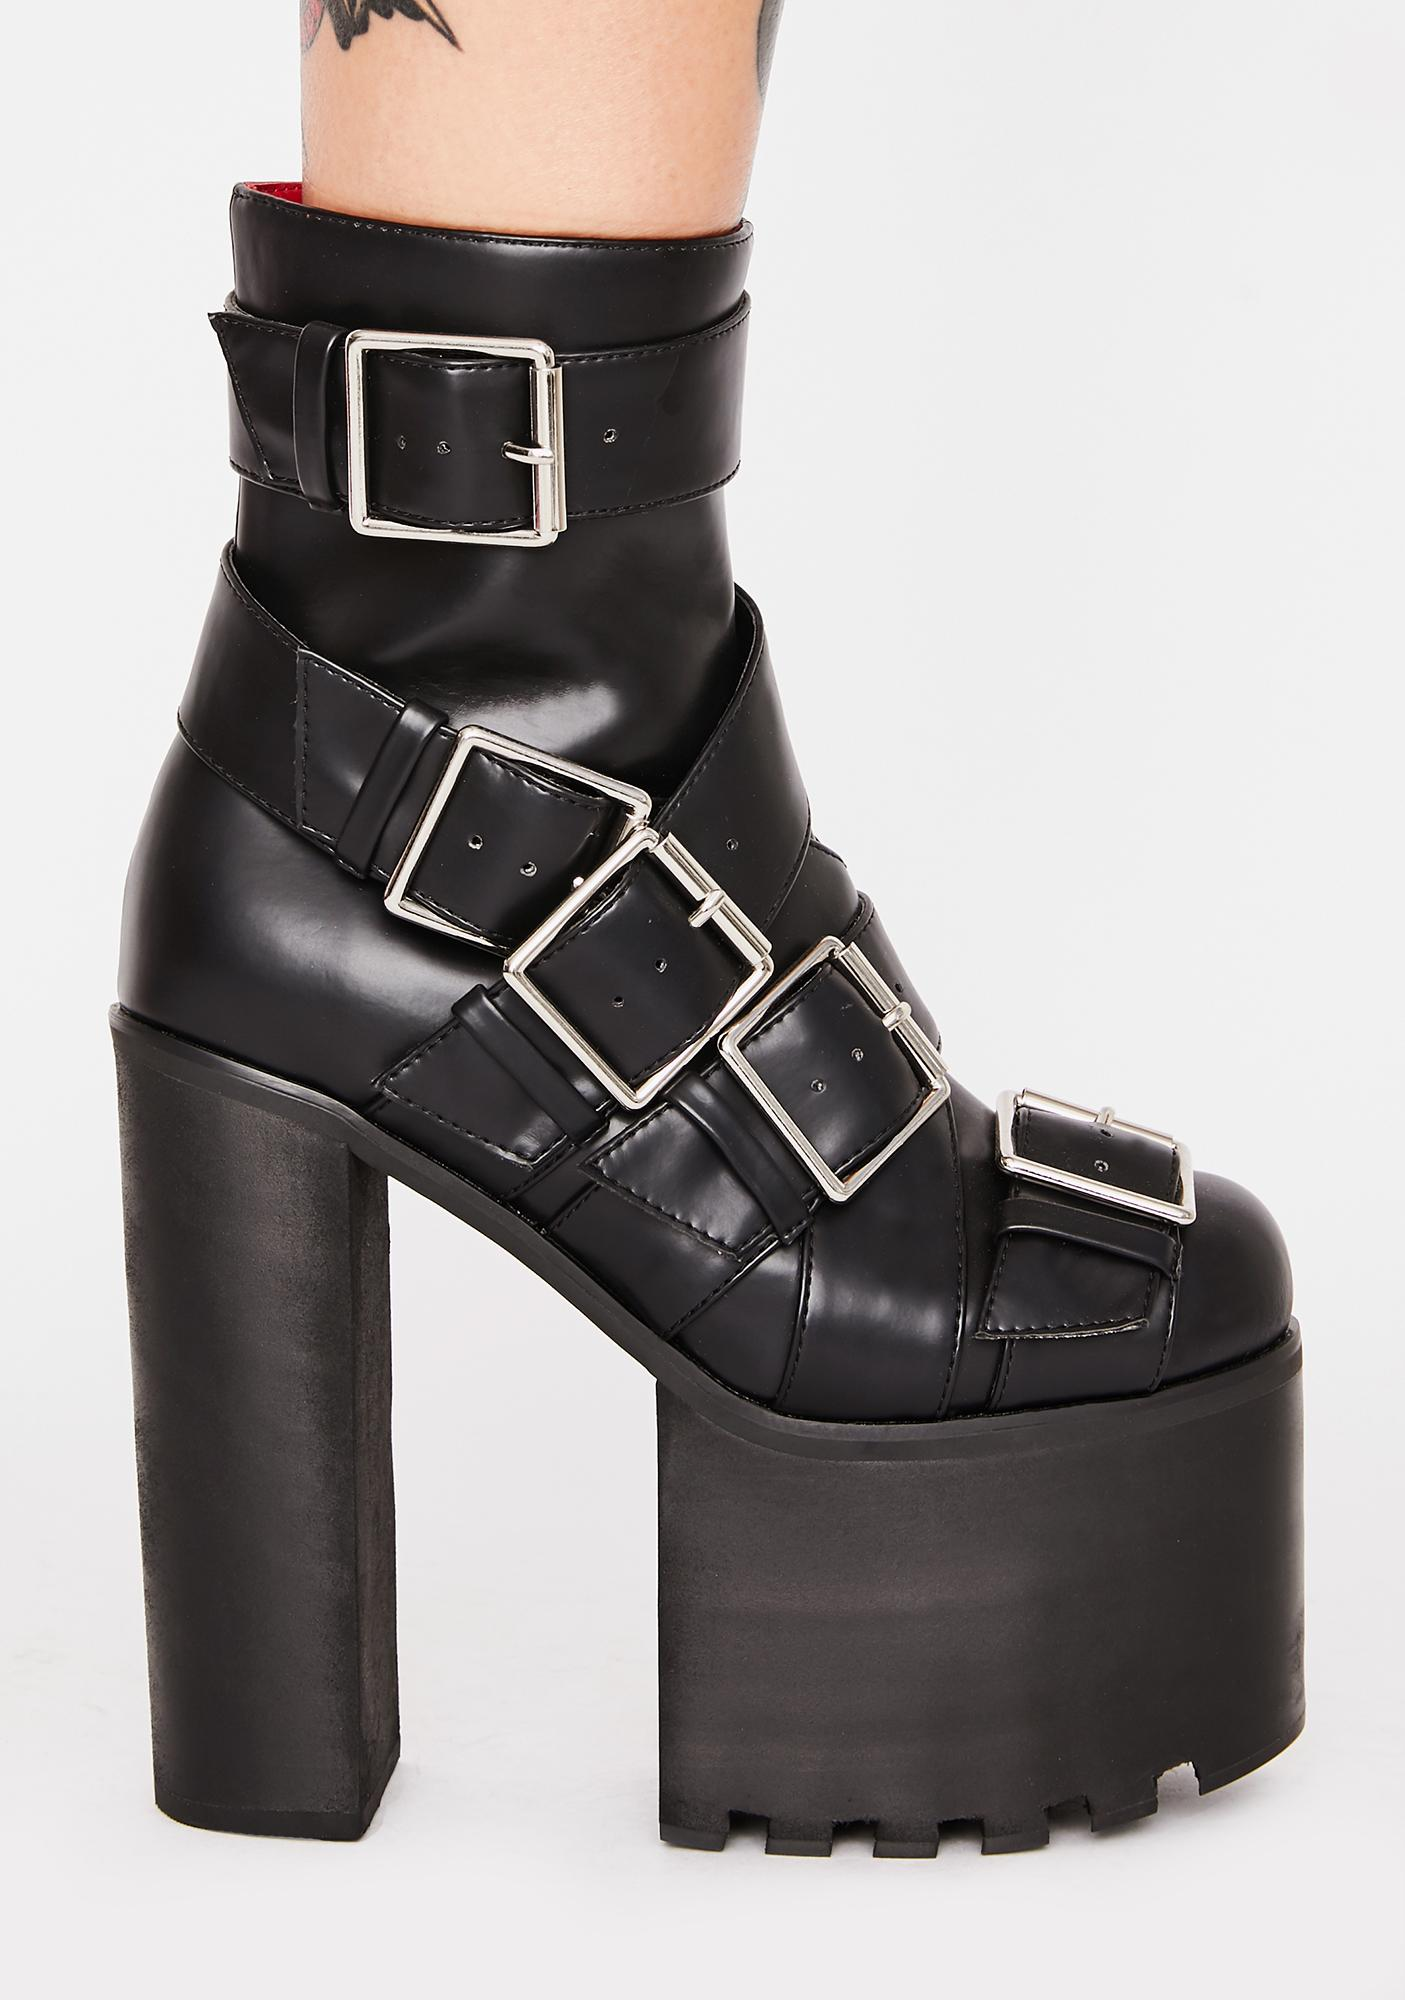 Charla Tedrick Gibson Ankle Boots